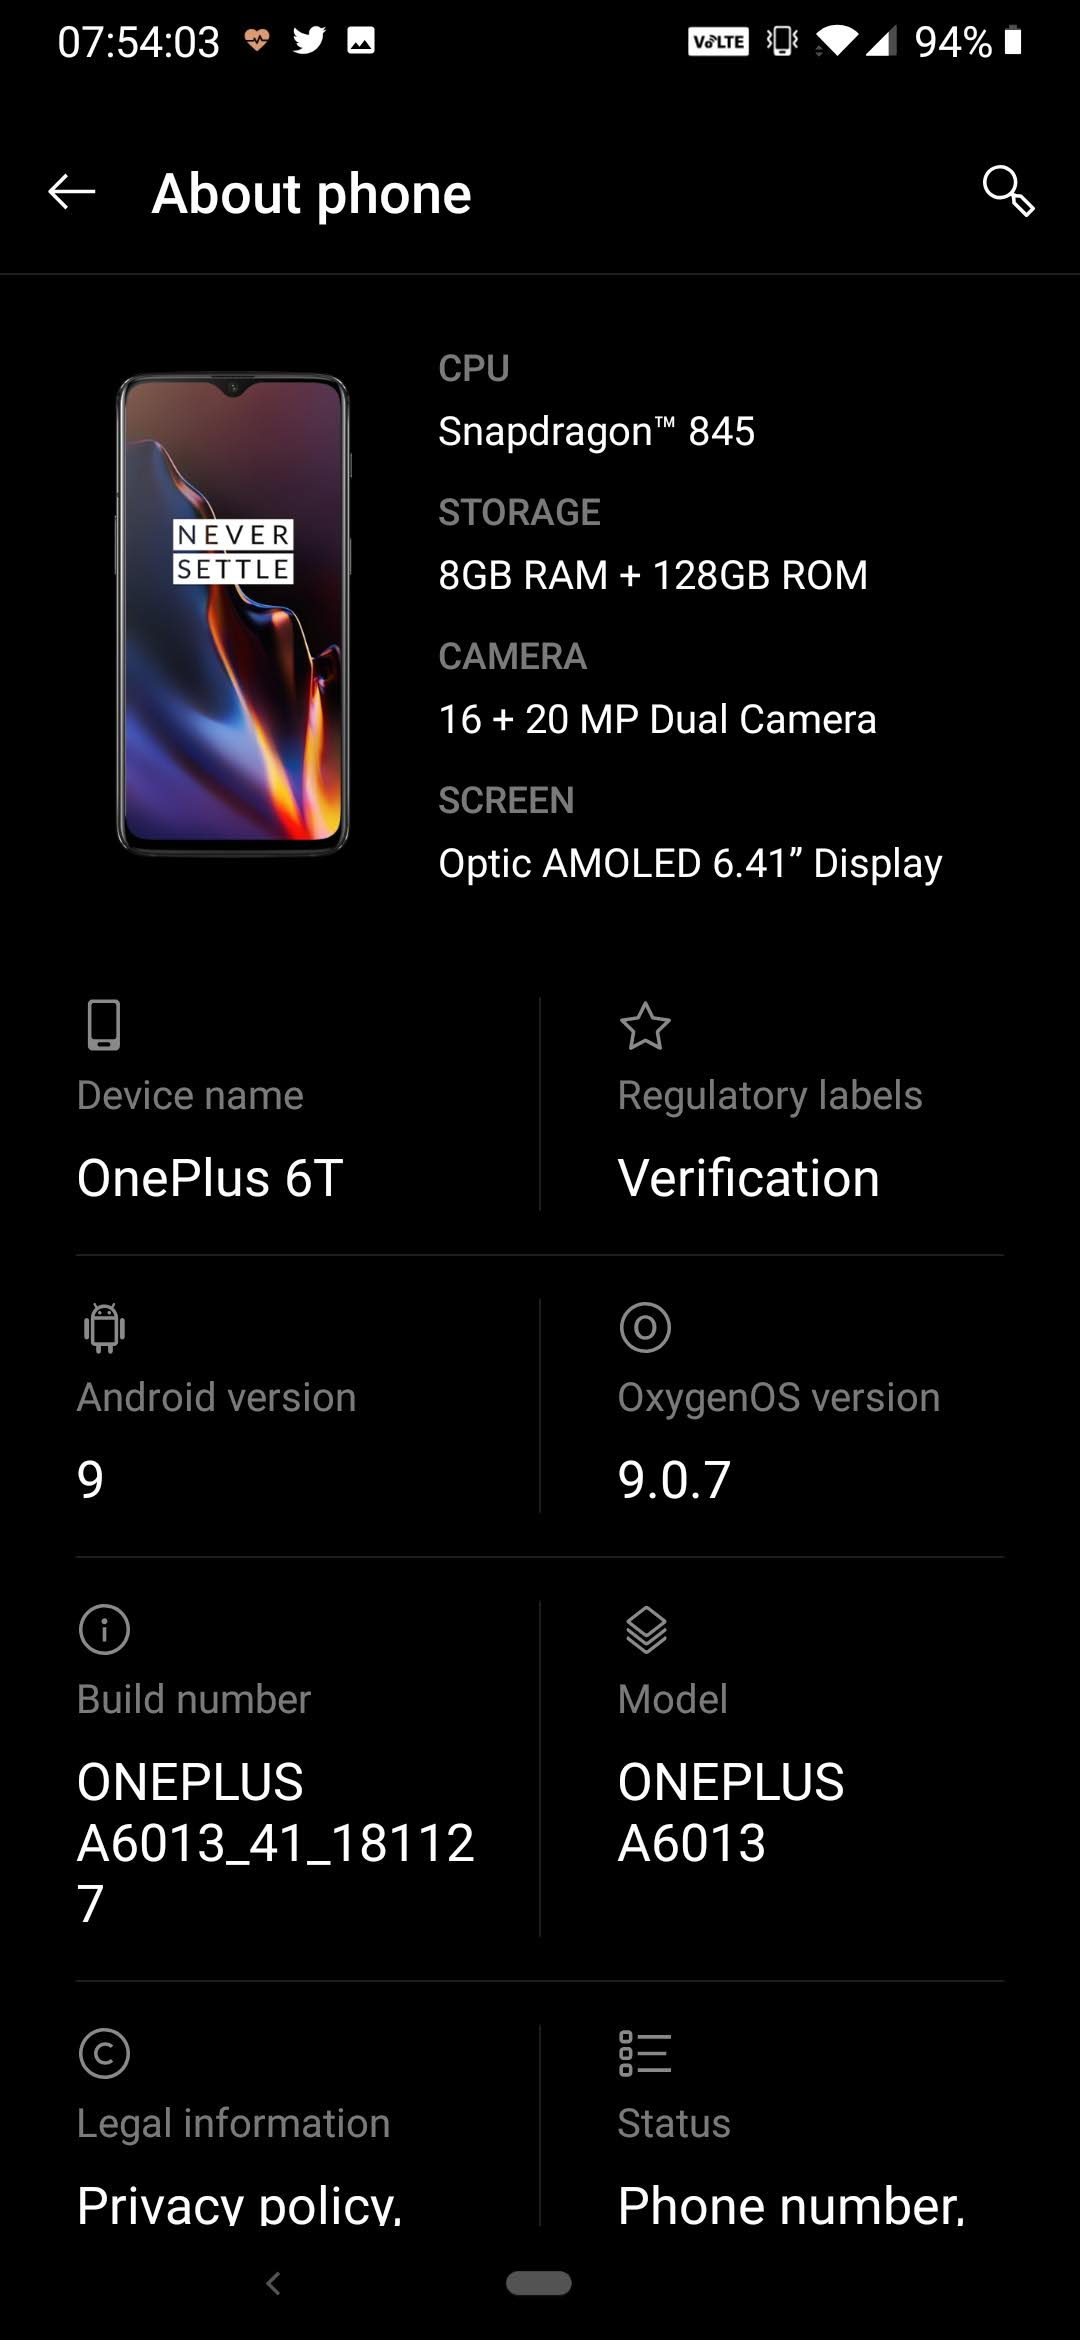 Update 2: How to get VoLTE and WiFi Calling on a Oneplus 6T on